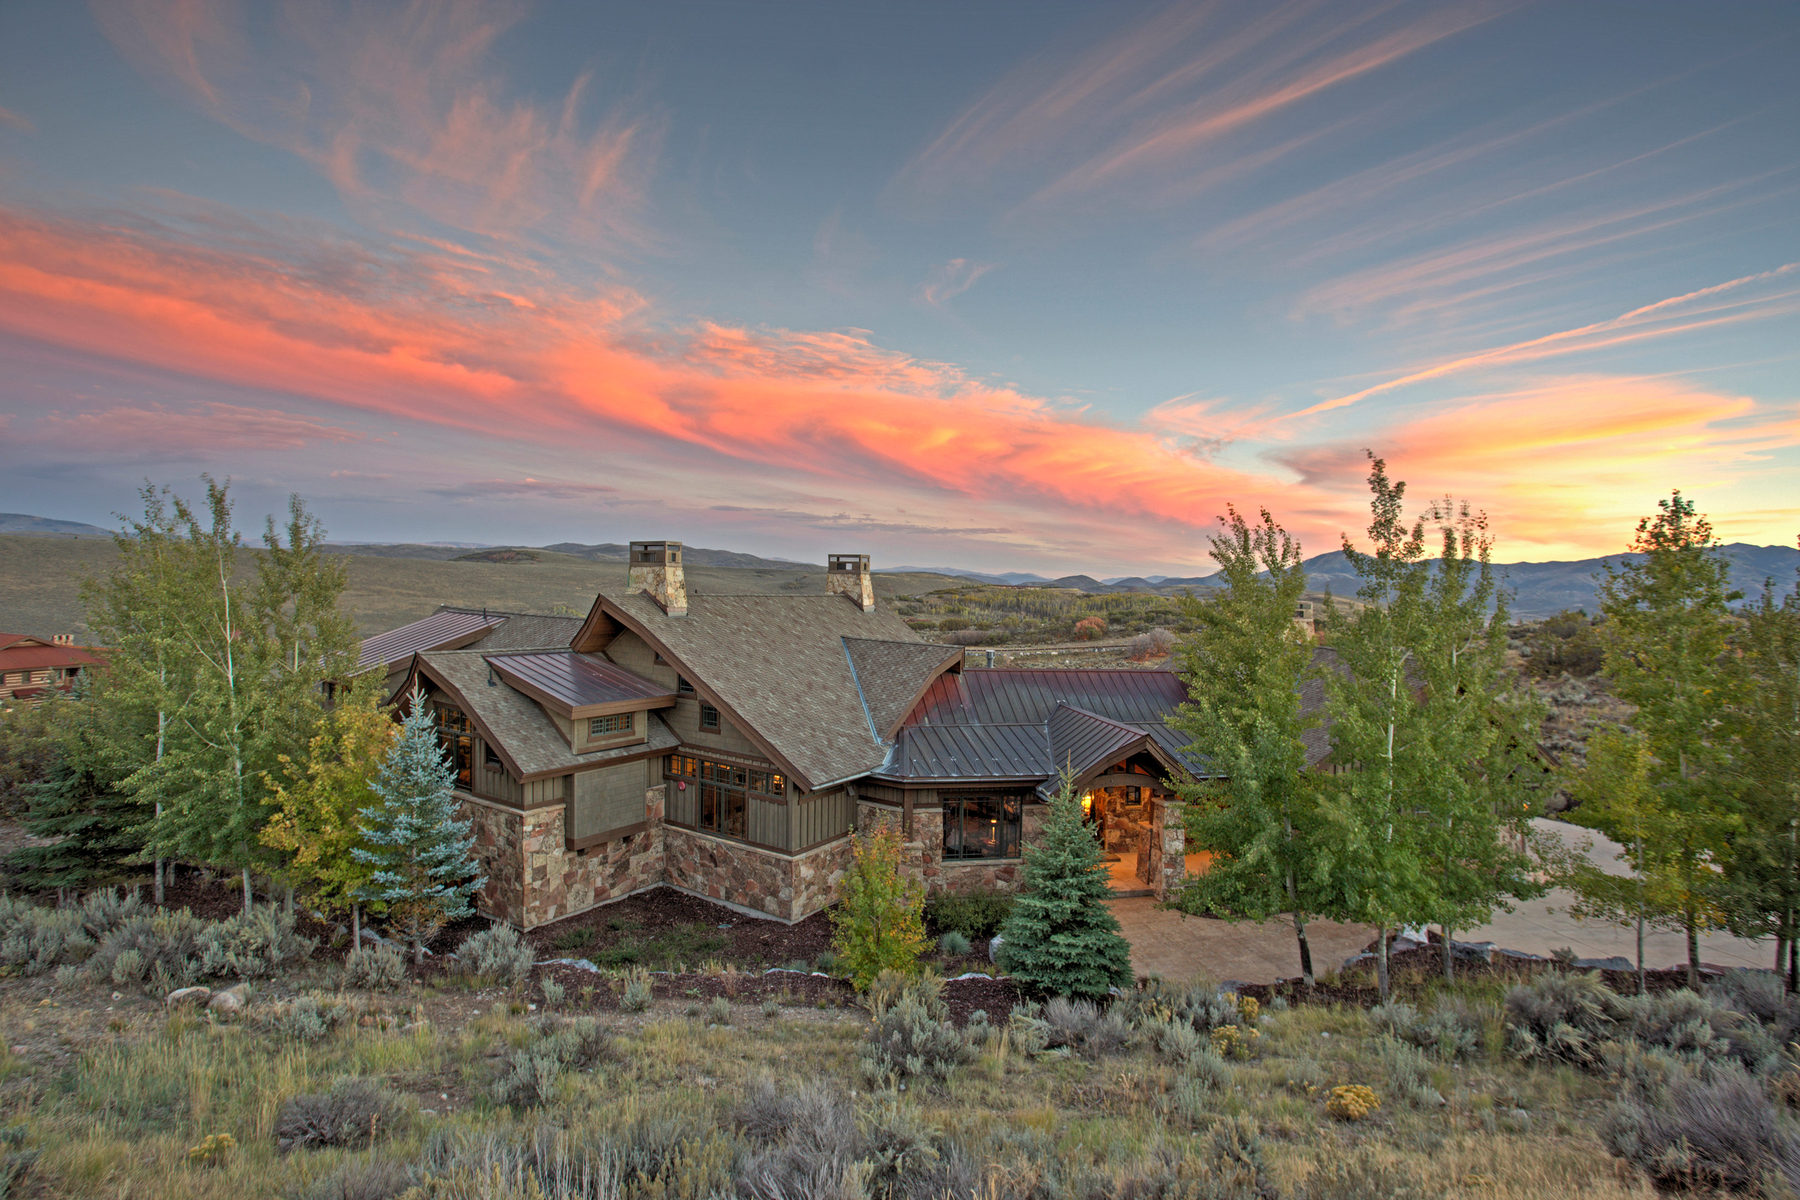 Single Family Home for Sale at Spectacular Mountain Contemporary Promontory Home 7978 N Promontory Ranch Rd Park City, Utah 84098 United States